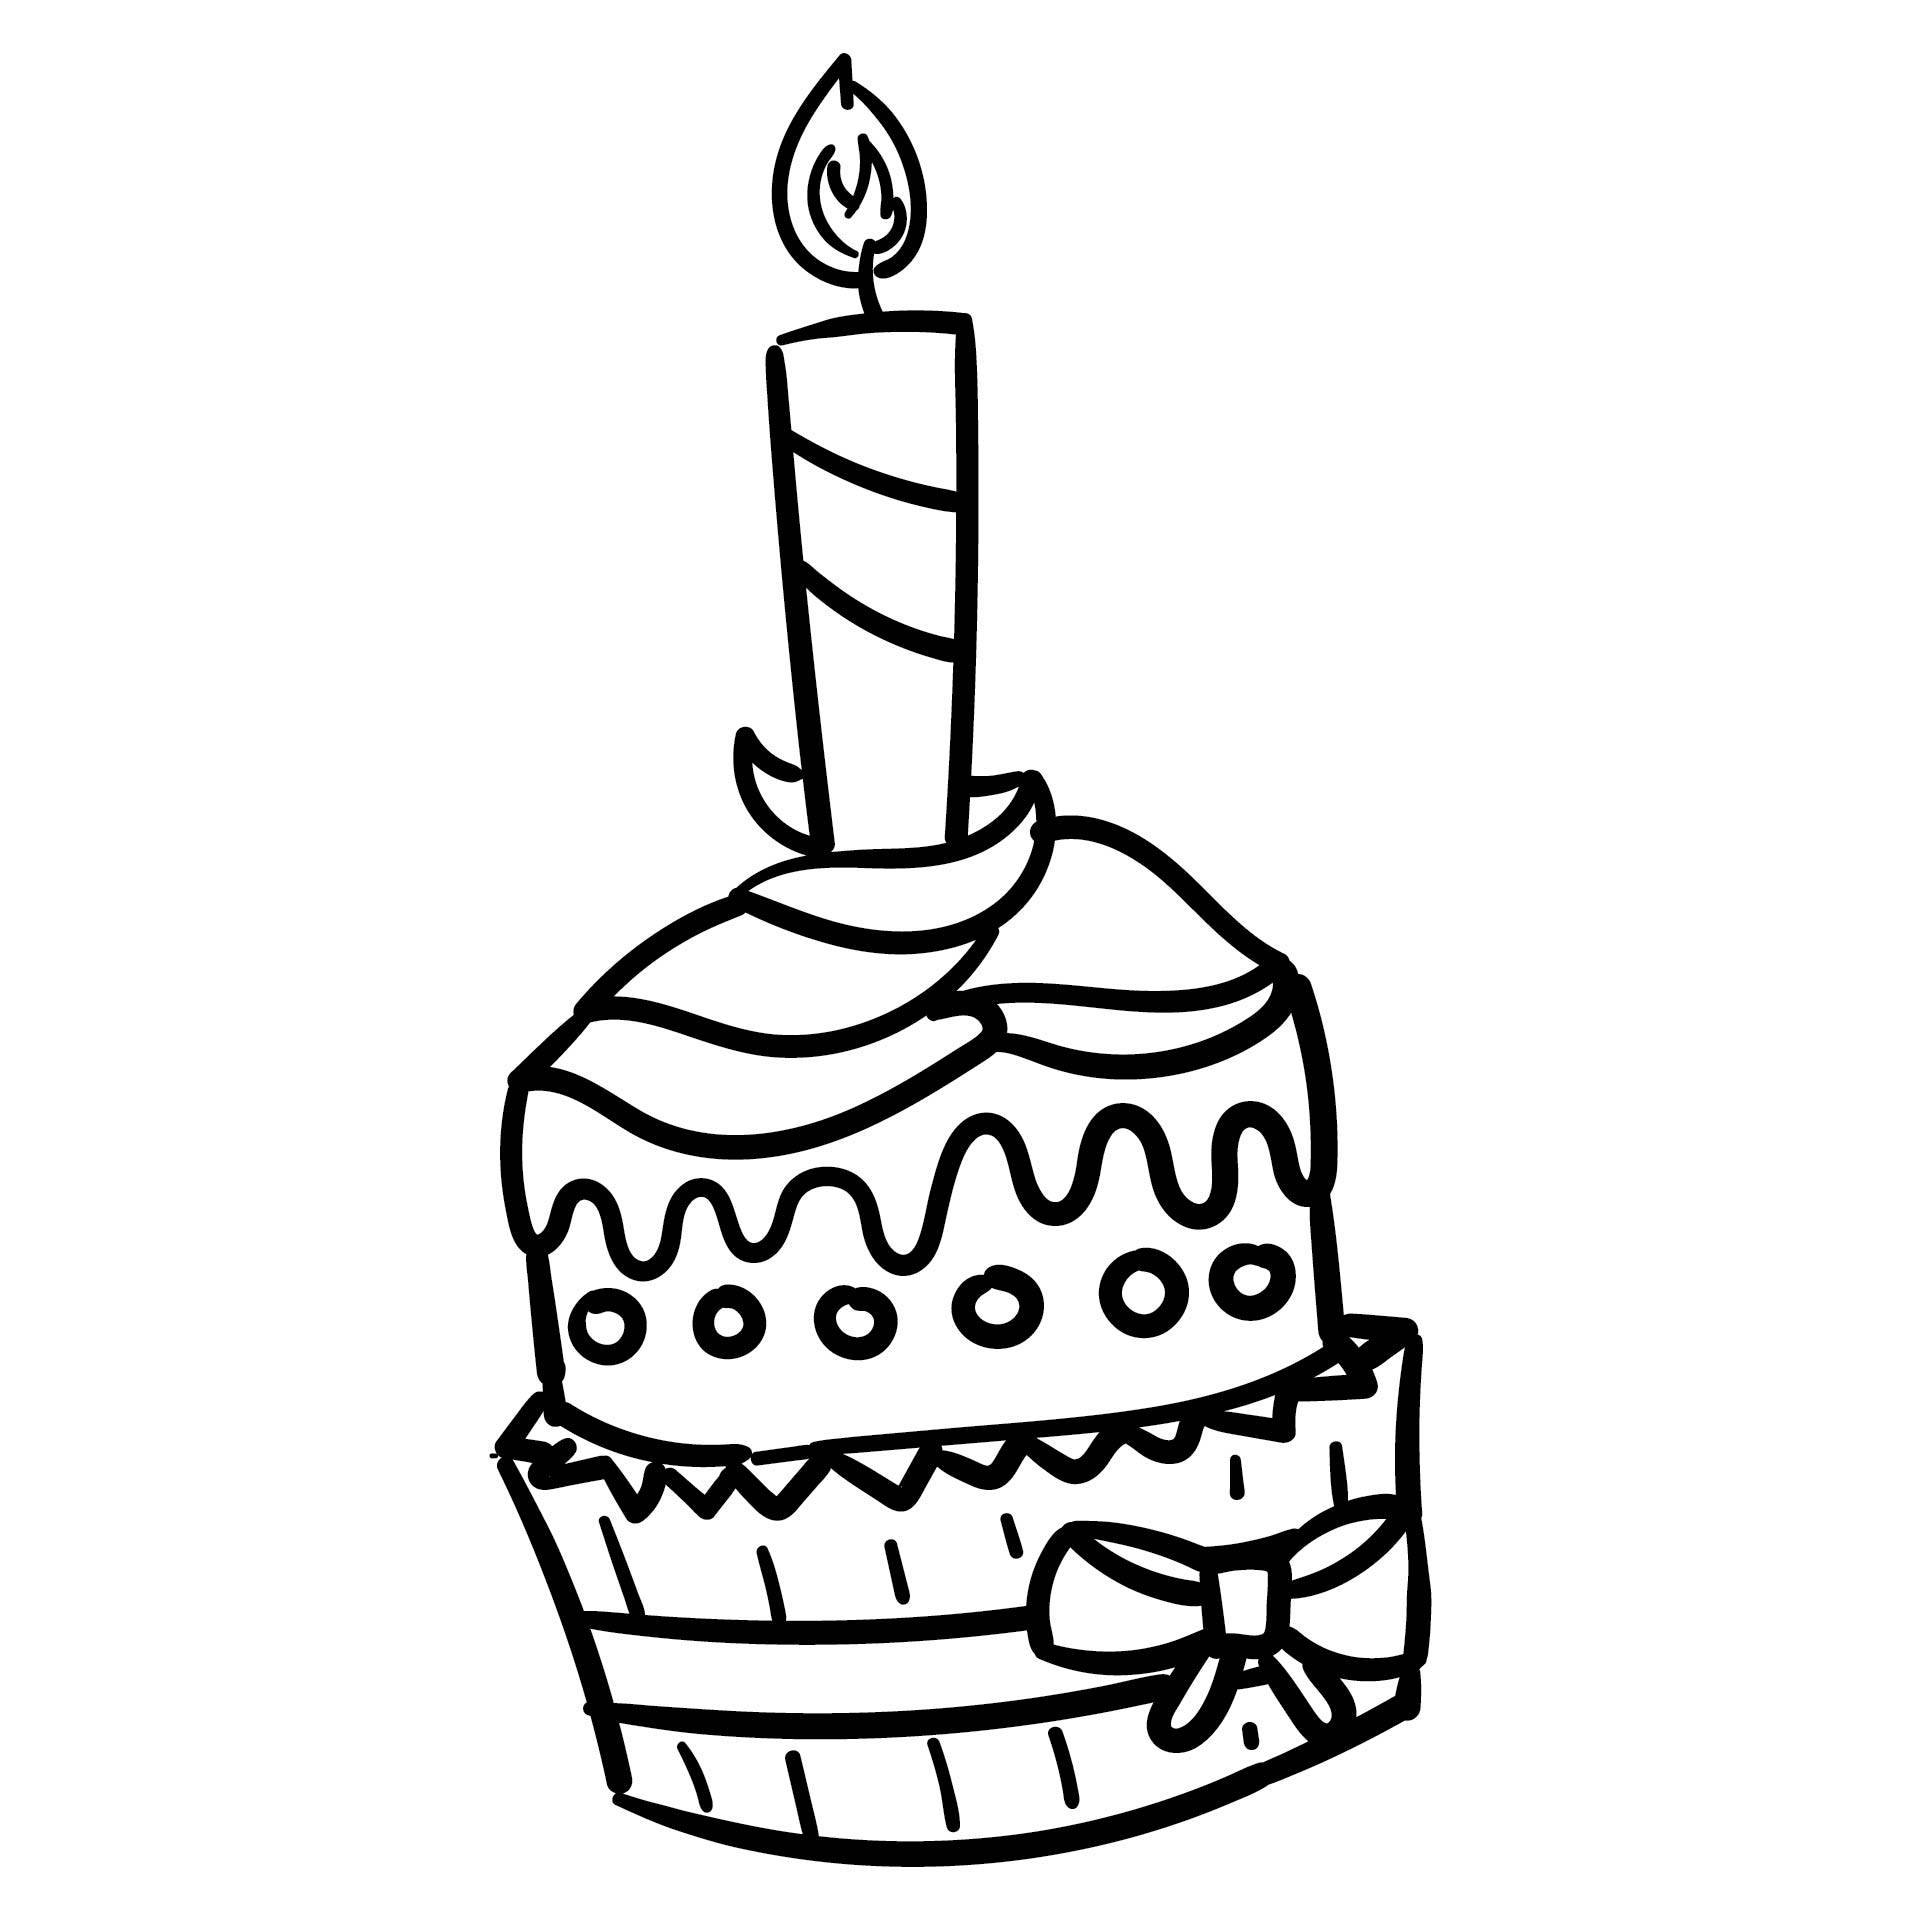 5 Best Images of Printable Birthday Cupcake Outlines ...